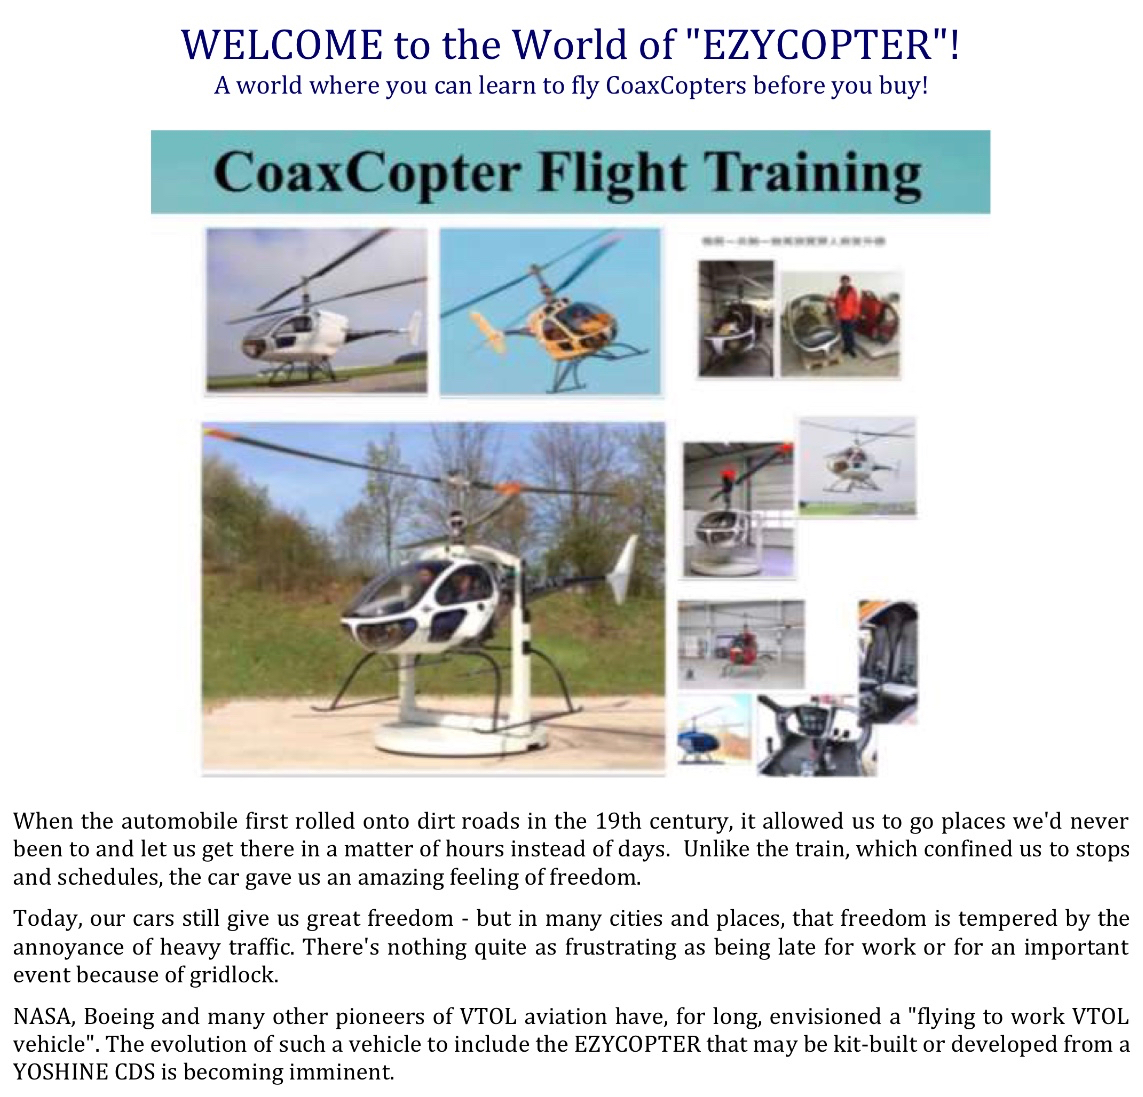 coaxcopter flight training